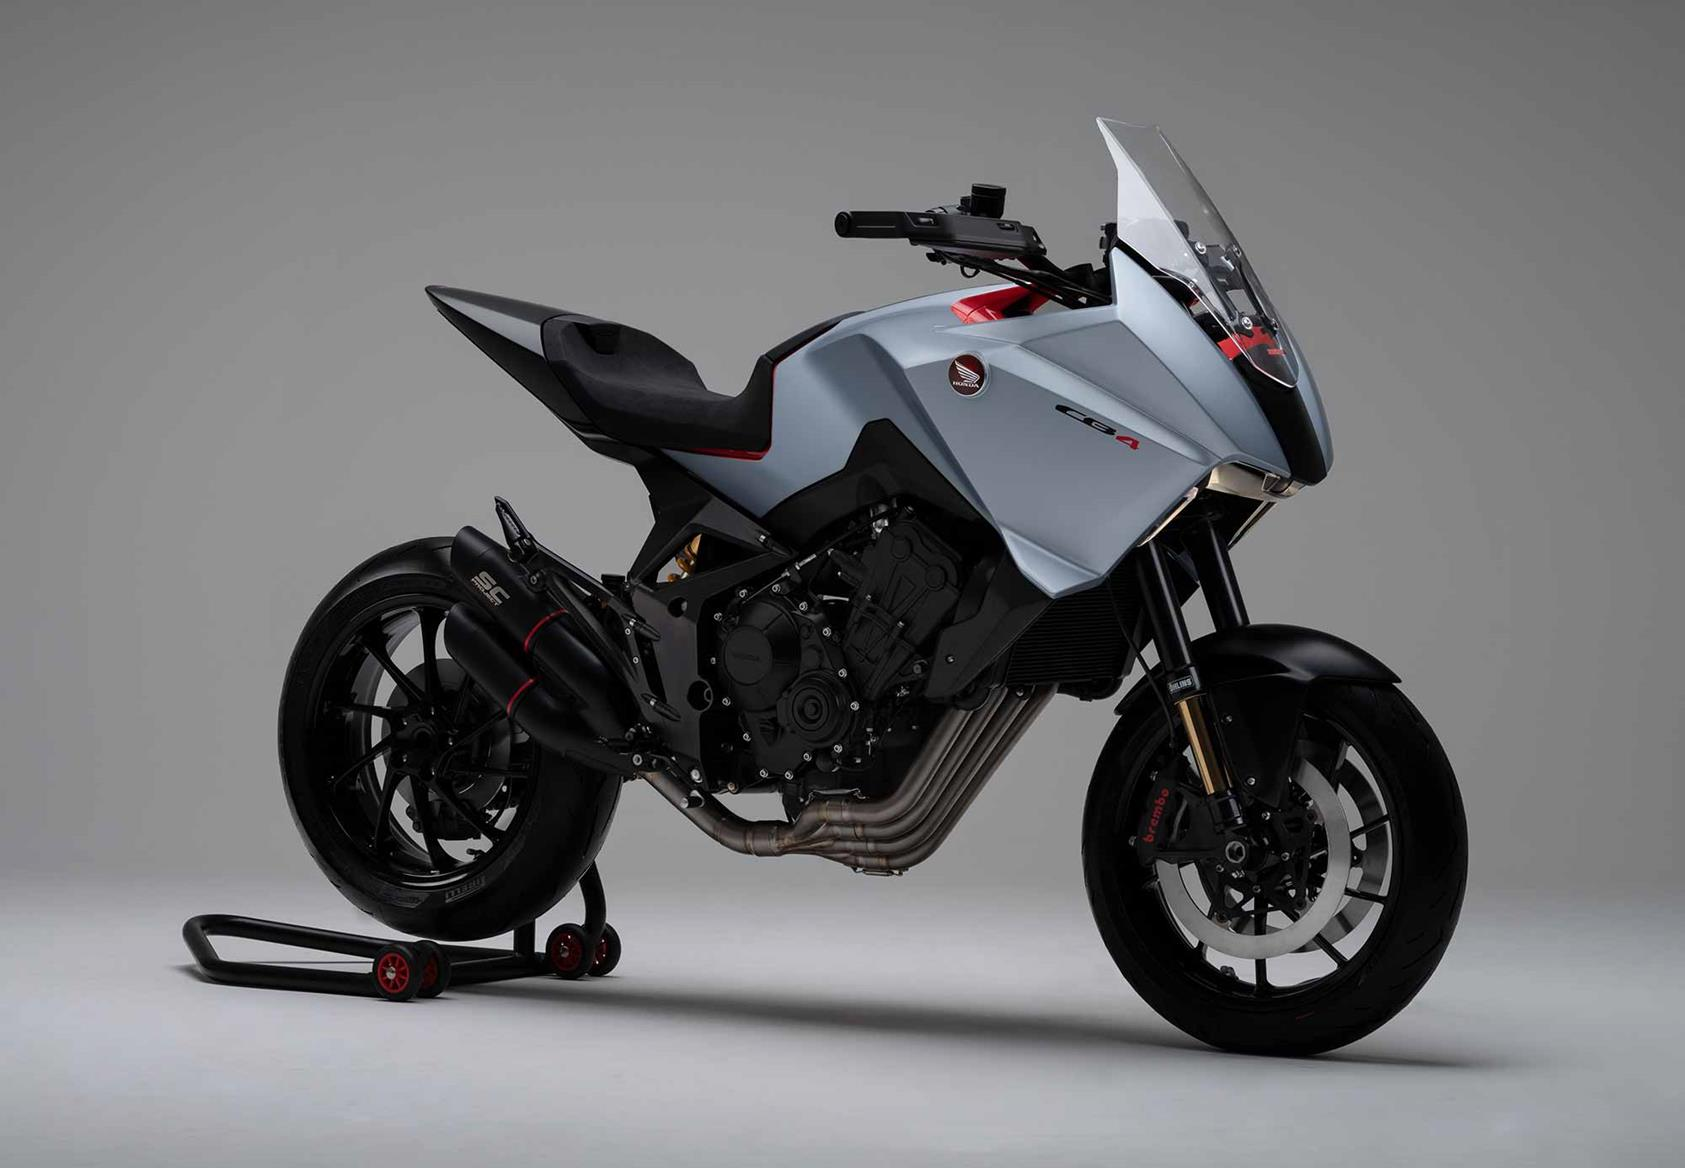 A right-hand view of the Honda CB4X